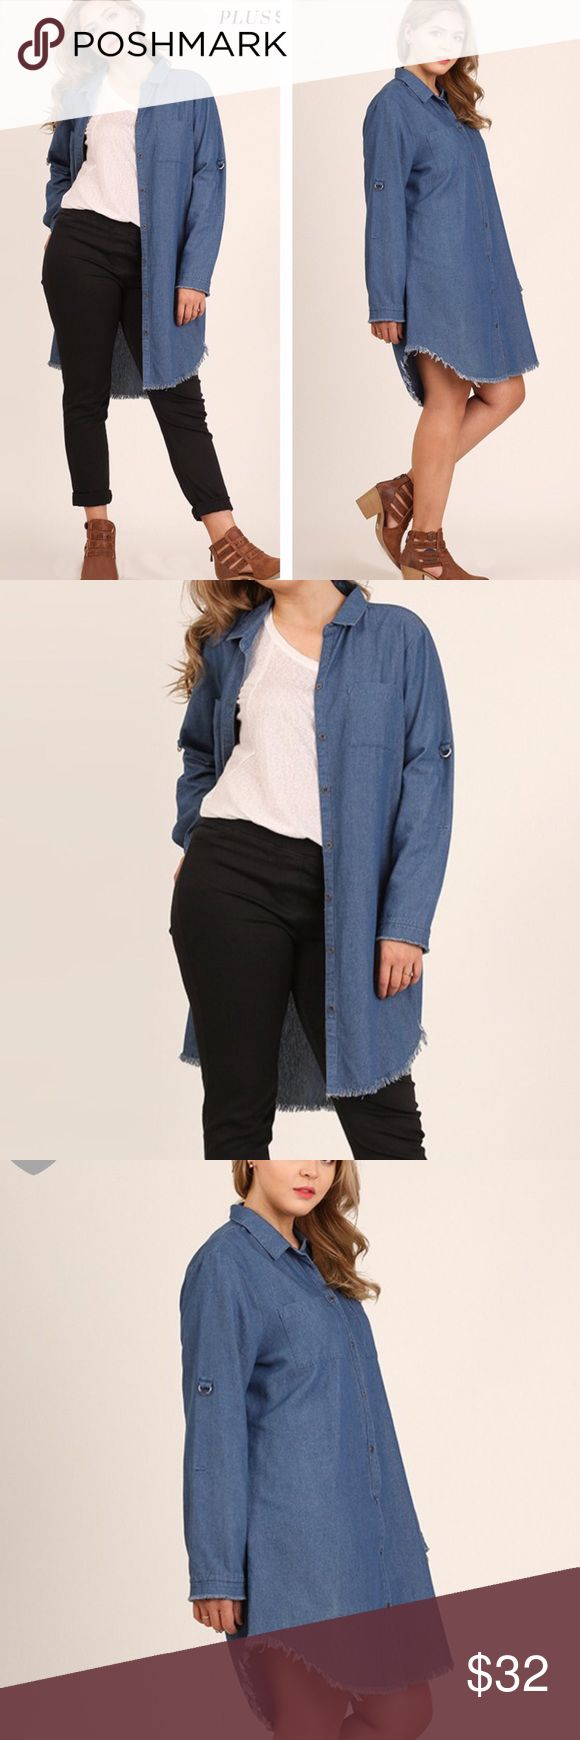 VERSATILE DENIM JACKET, TUNIC OR DRESS! Timeless denim topper, tunic or mini with boyfriend loose hem. Sleeves roll up or down with tab. Snap closure. Measurements upon request. tla2 Tops Button Down Shirts